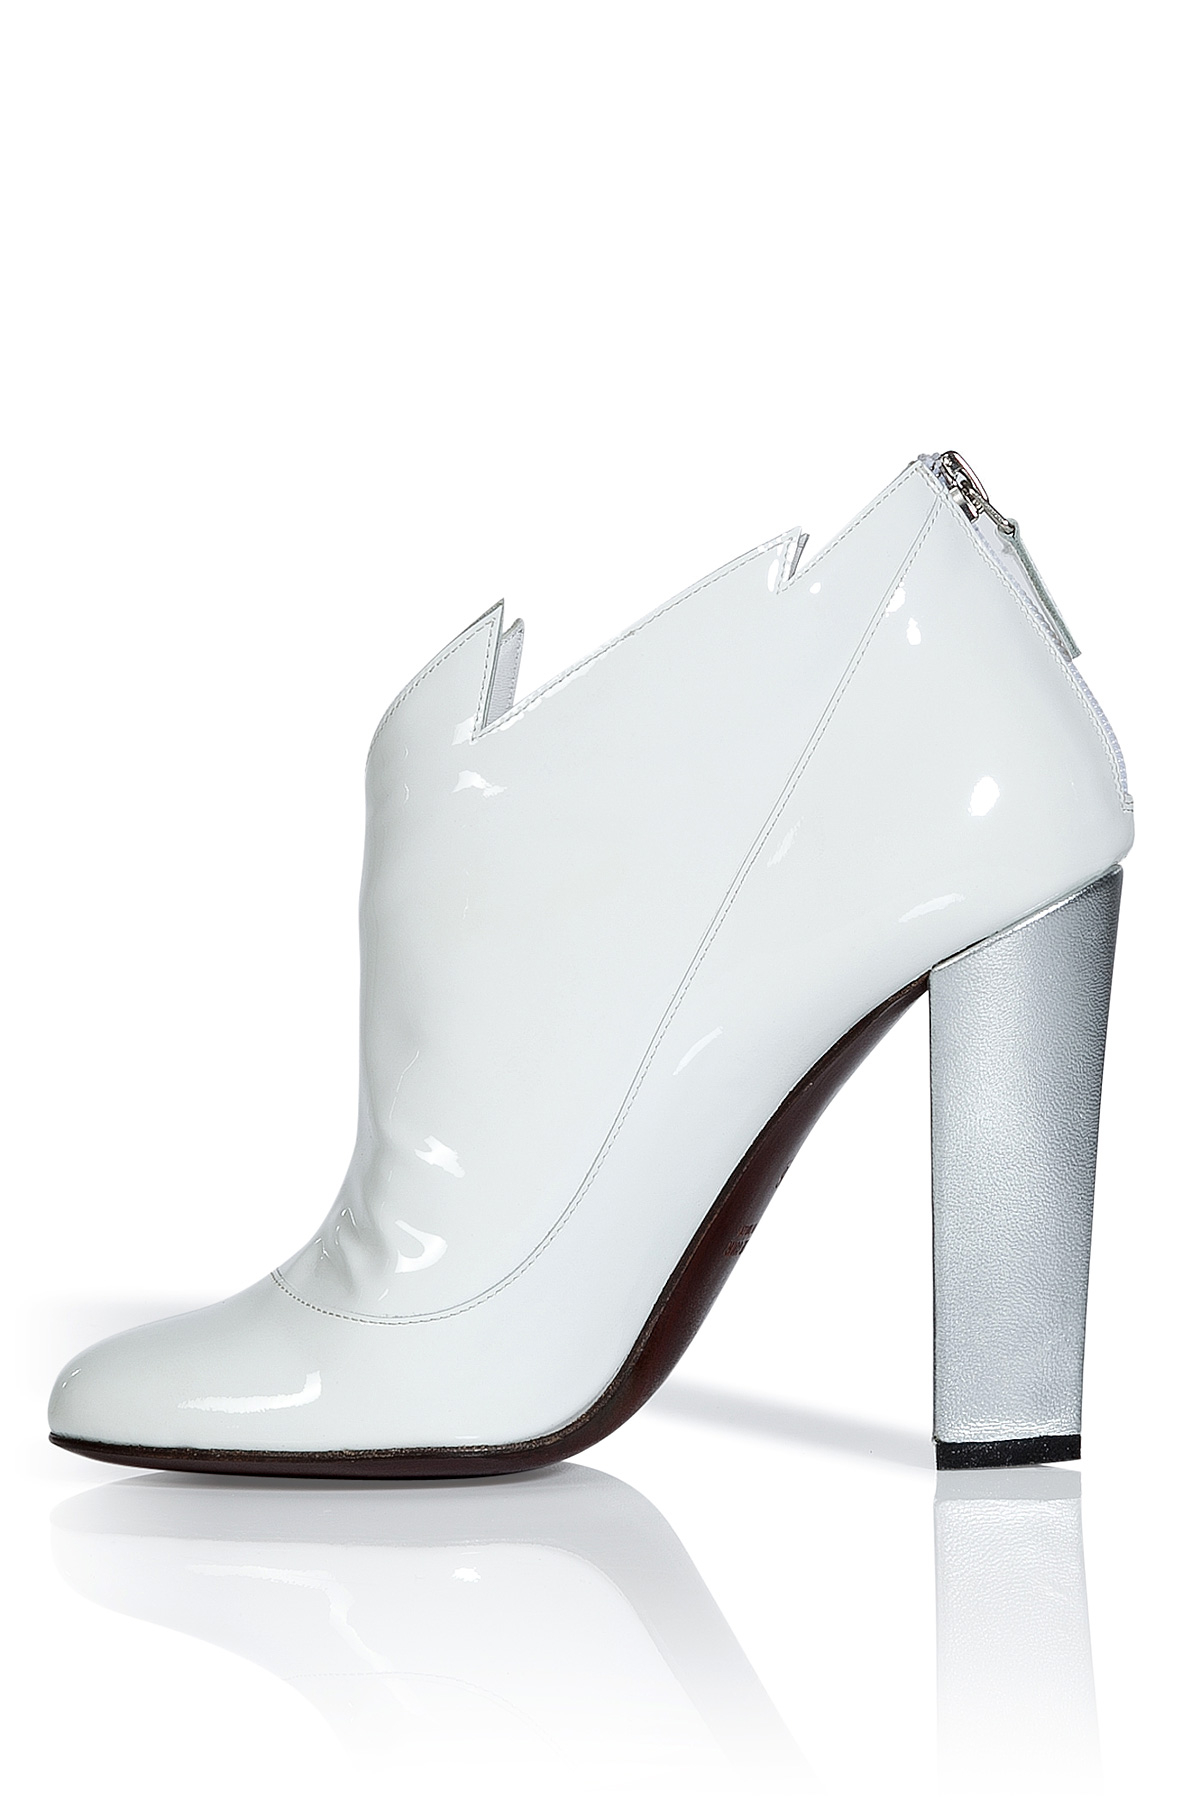 105c846e5a7 Laurence Dacade White And Silver Patent Leather Booties in White - Lyst